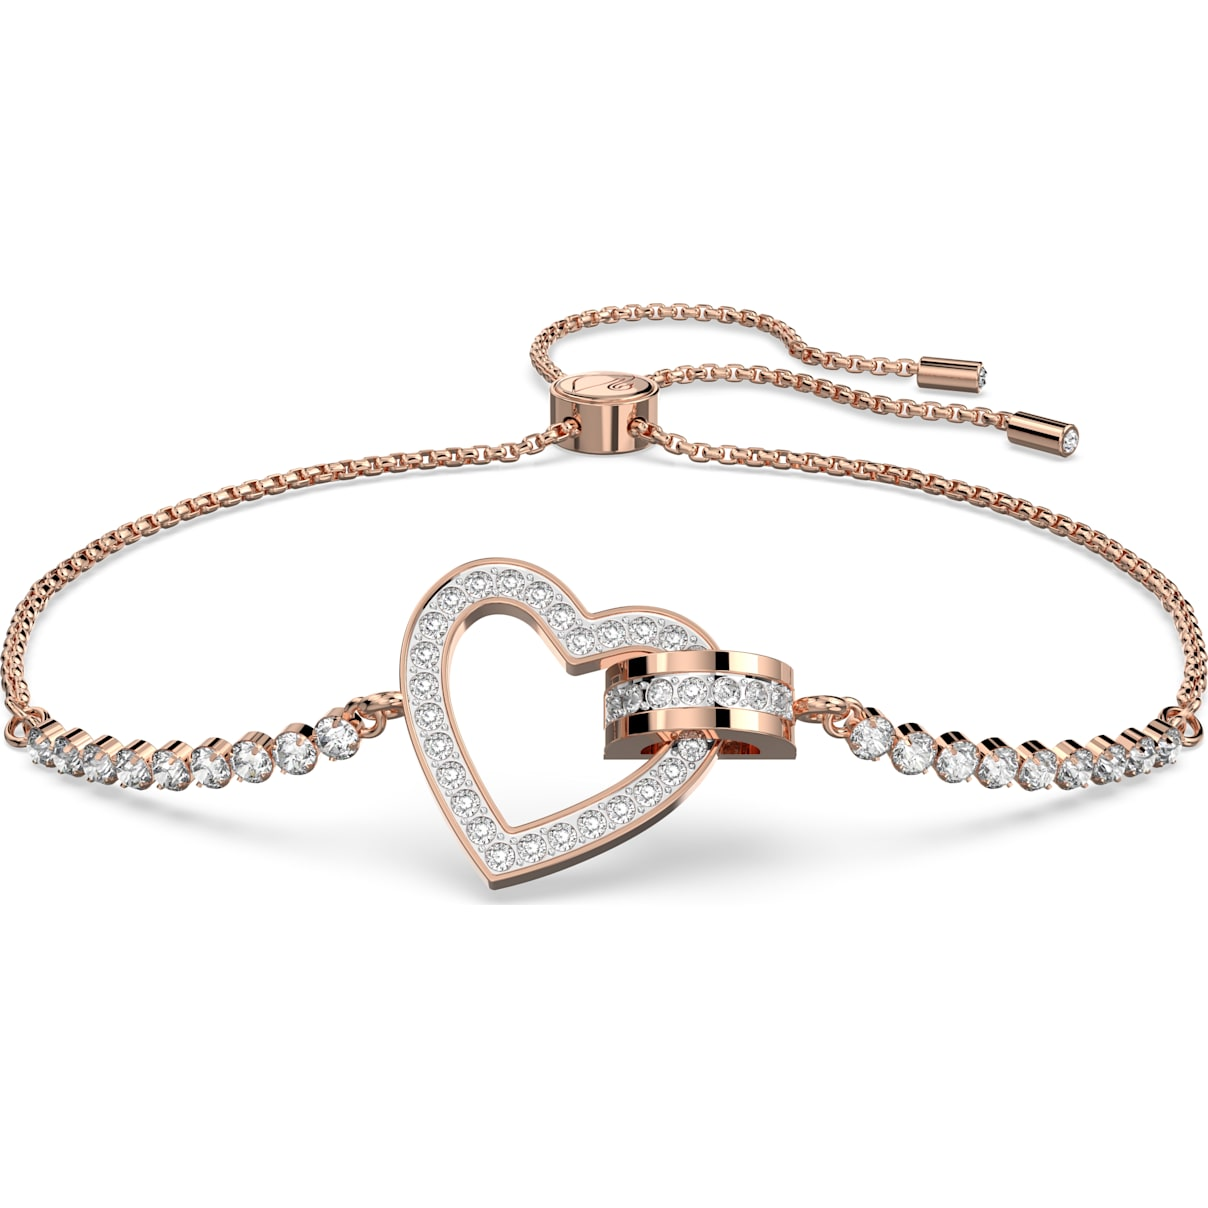 Swarovski Lovely Bracelet, White, Rose-gold tone plated